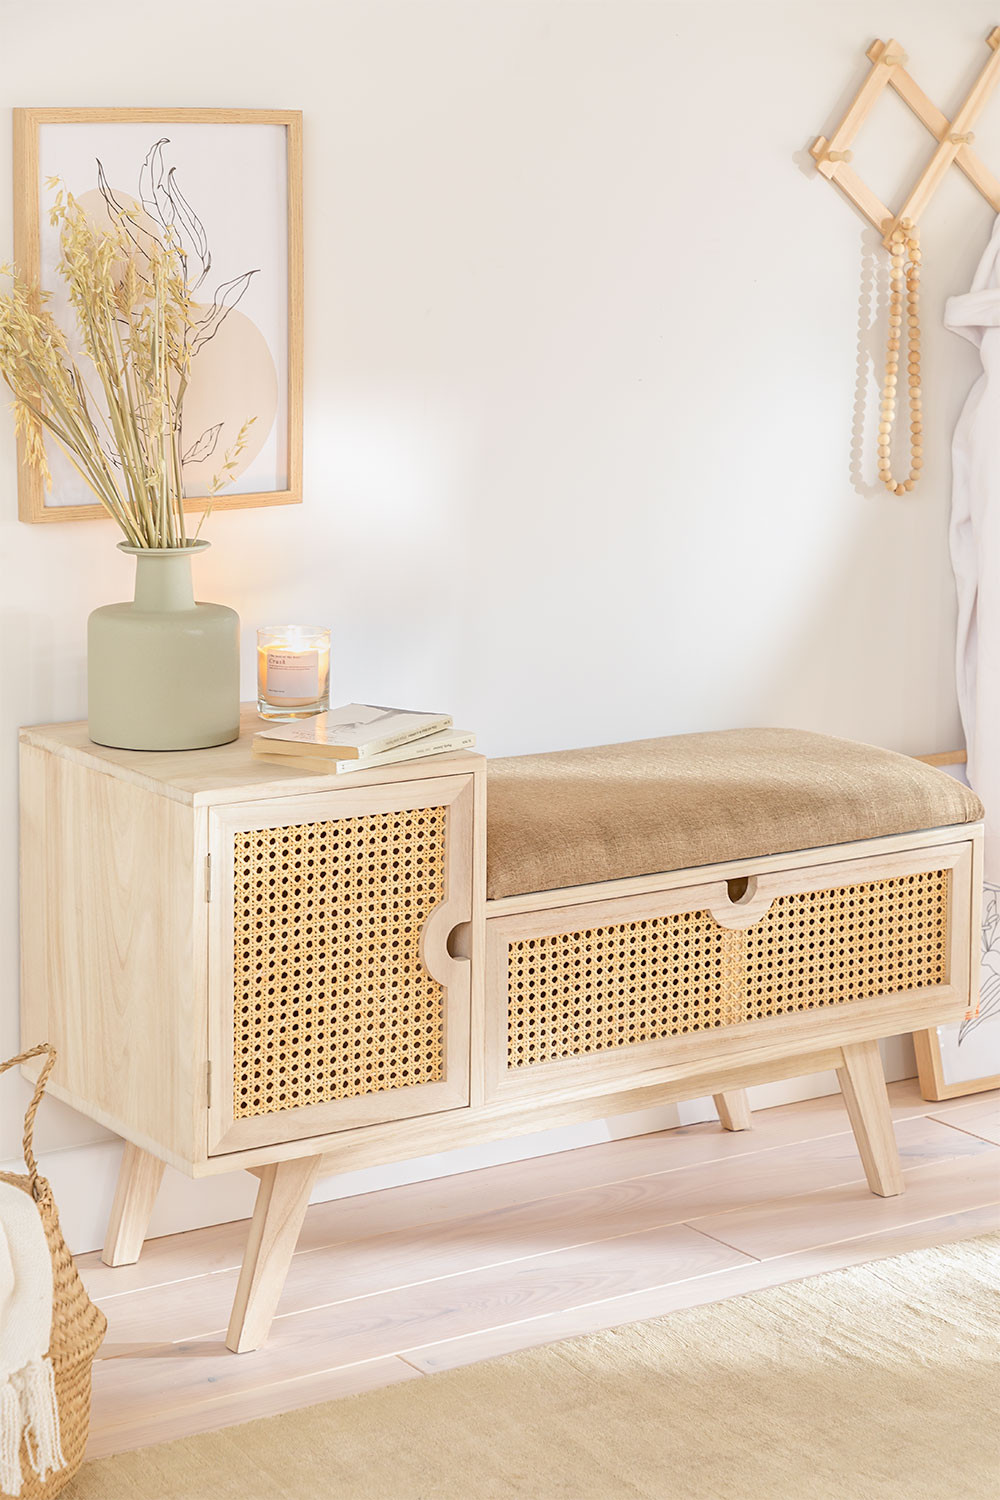 Wooden Bench with Ralik Style, gallery image 1